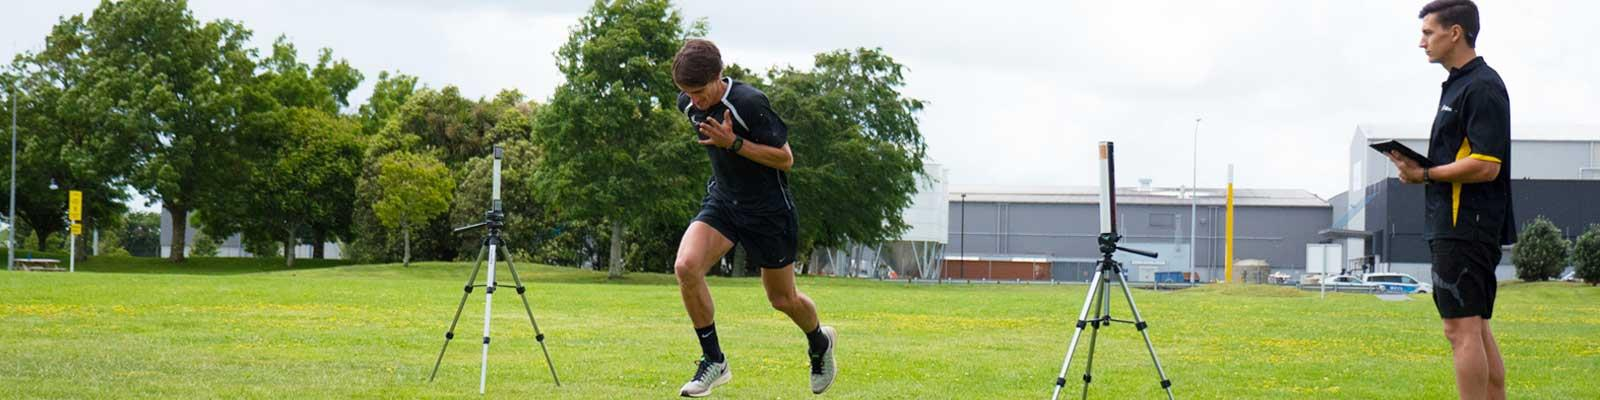 sports scientist measuring athlete speed during run